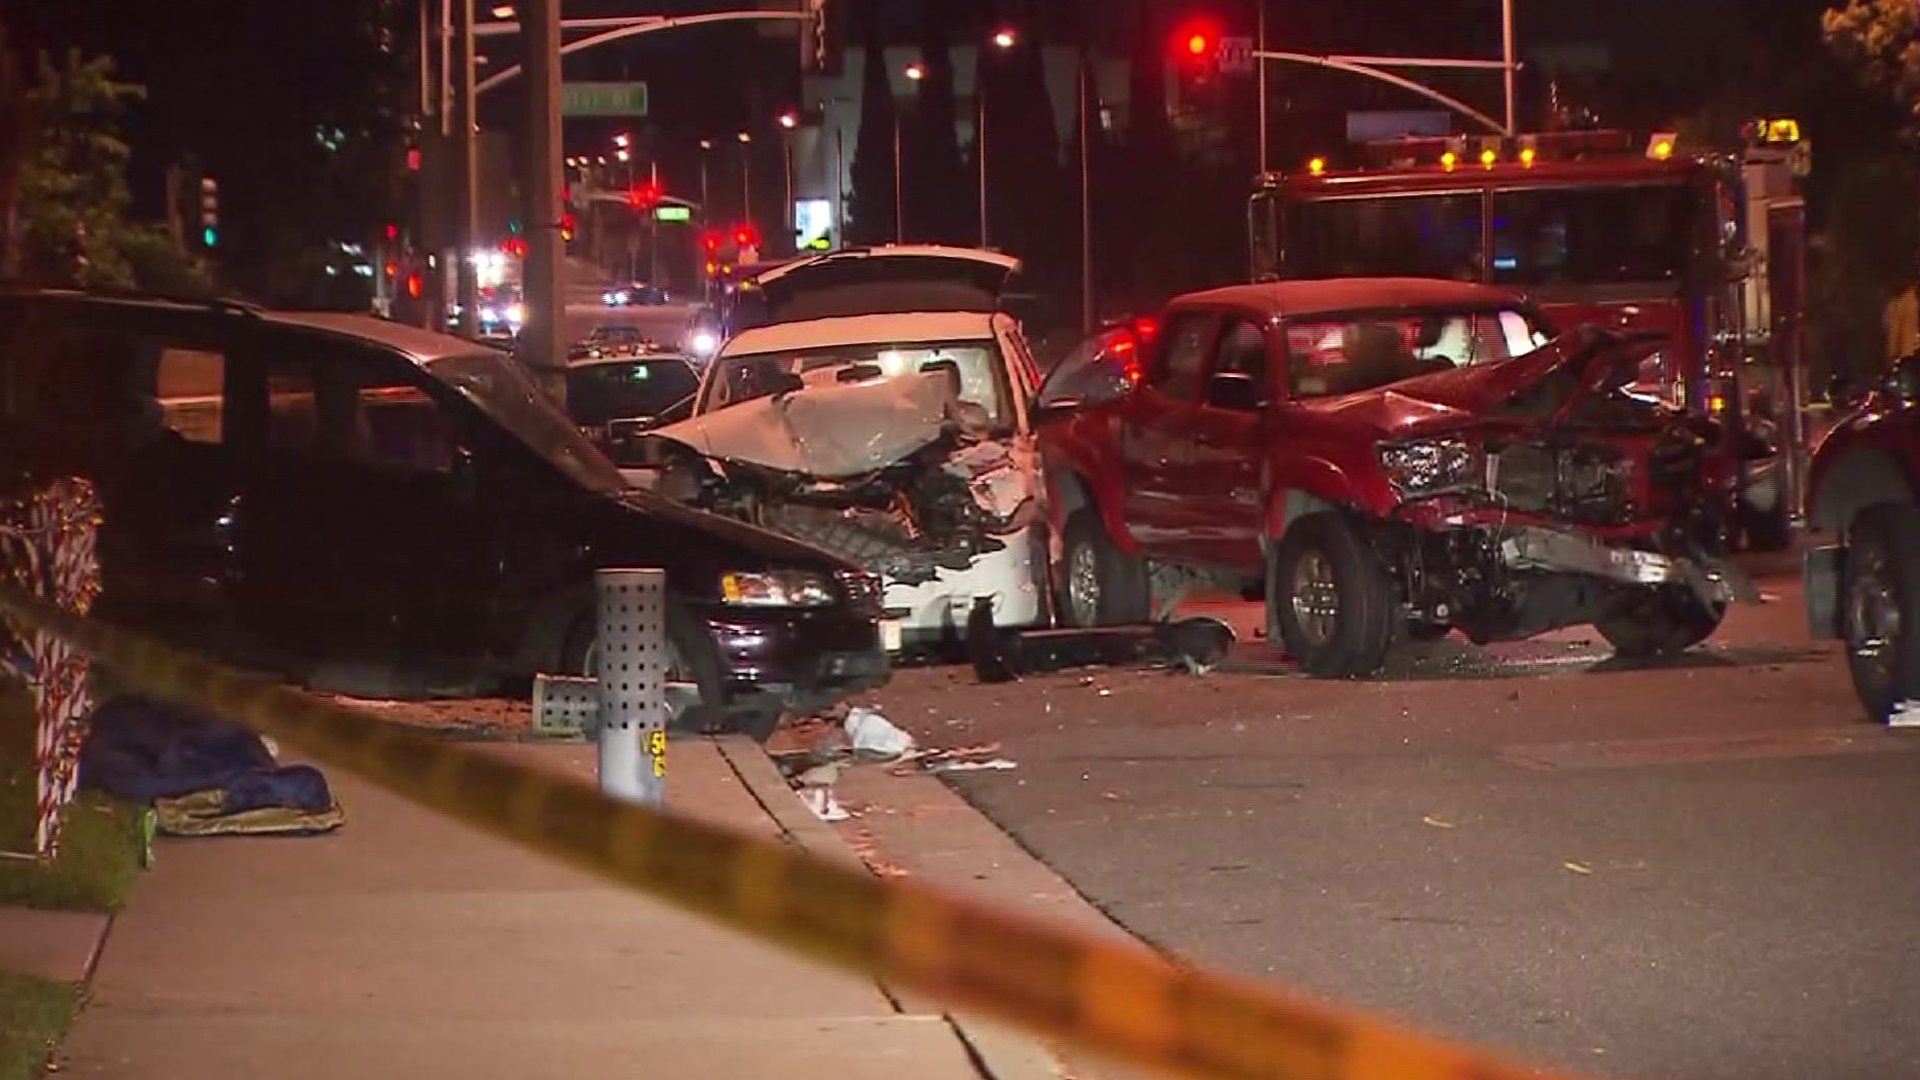 Multiple vehicles were involved in a collision in Alhambra on Sunday, Dec. 14, 2014. (Credit: KTLA)